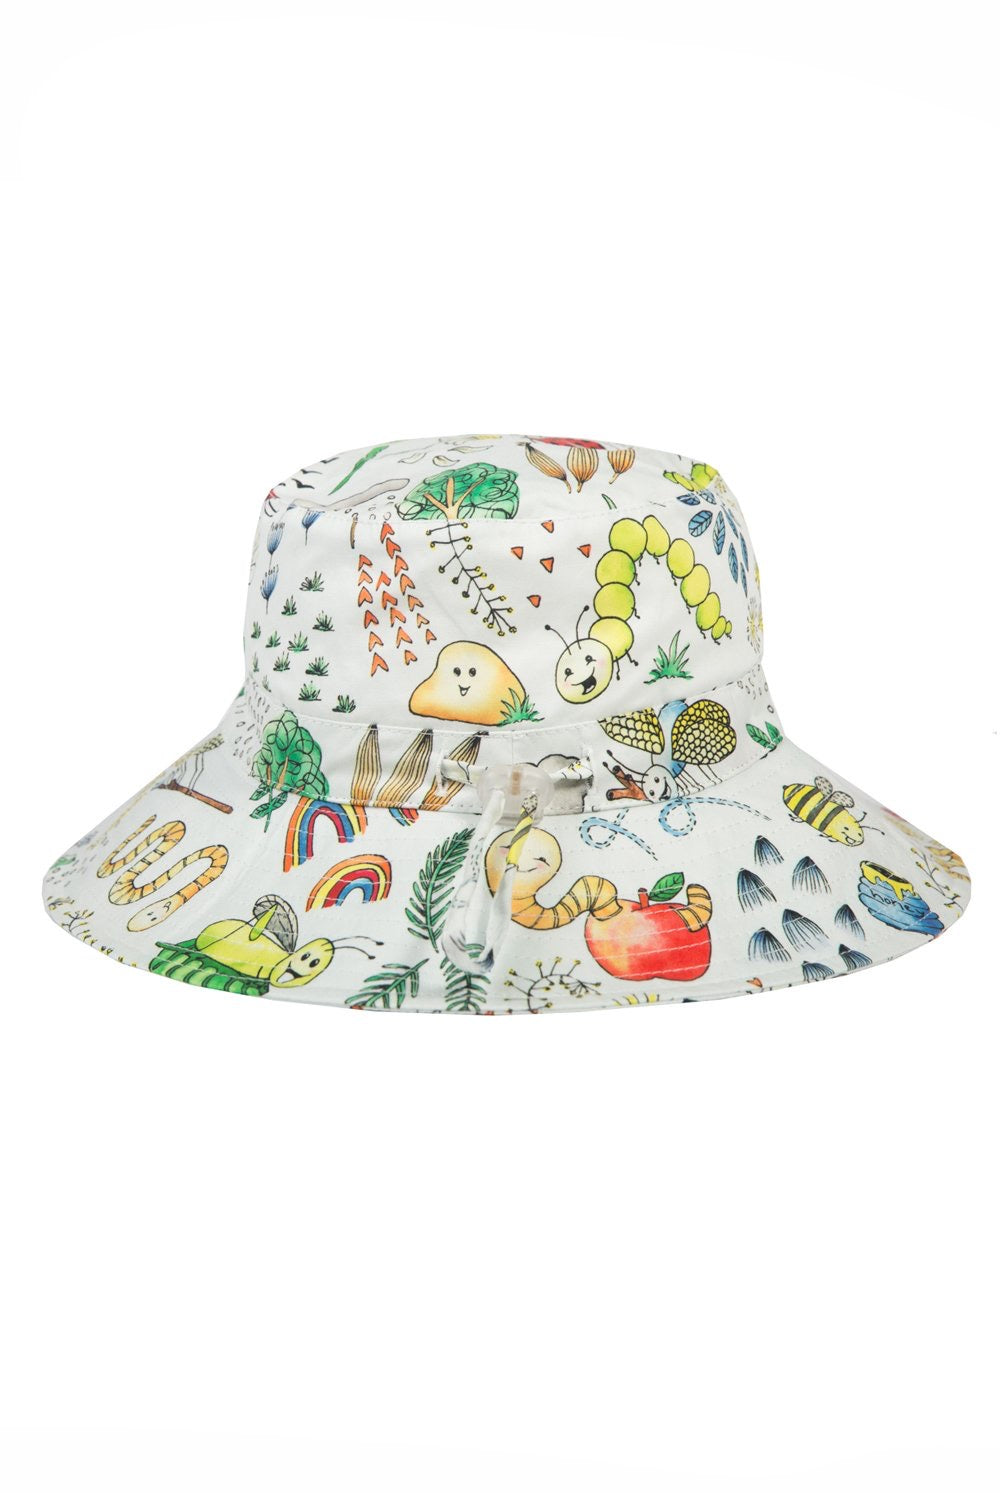 Marmalade Lion Sun Hat - Little Creatures